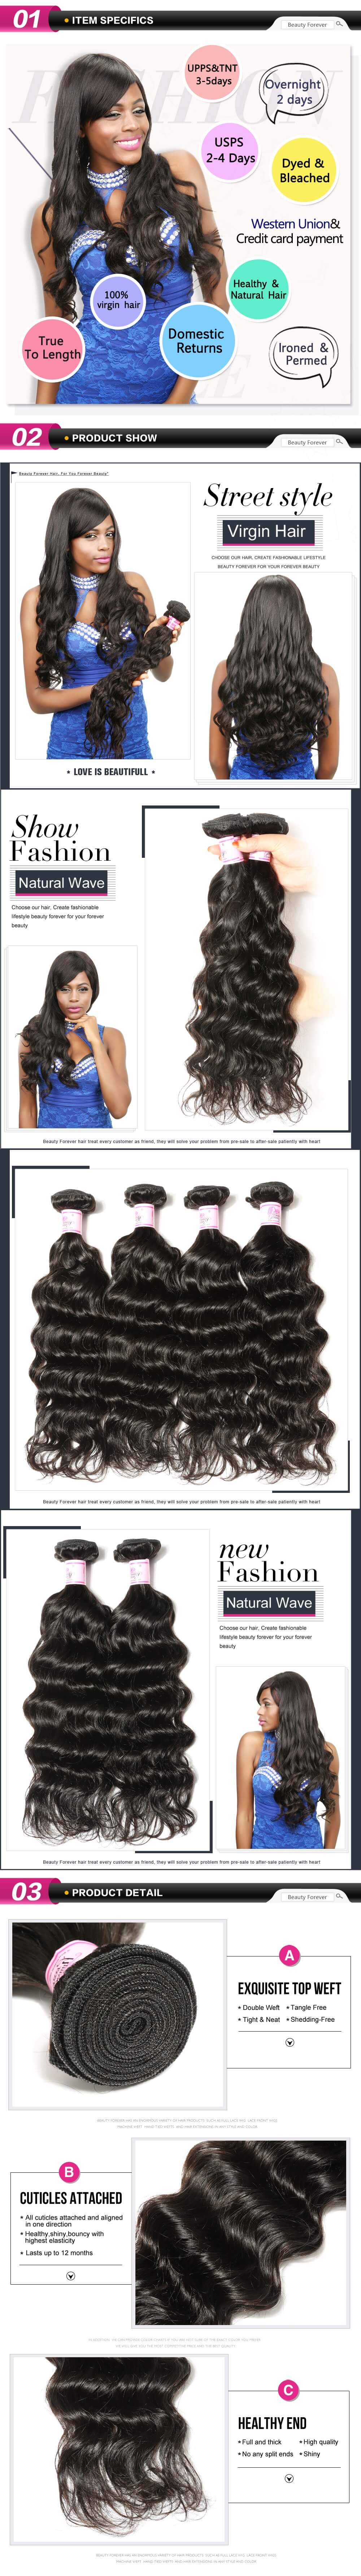 brazilian natural wave bundles